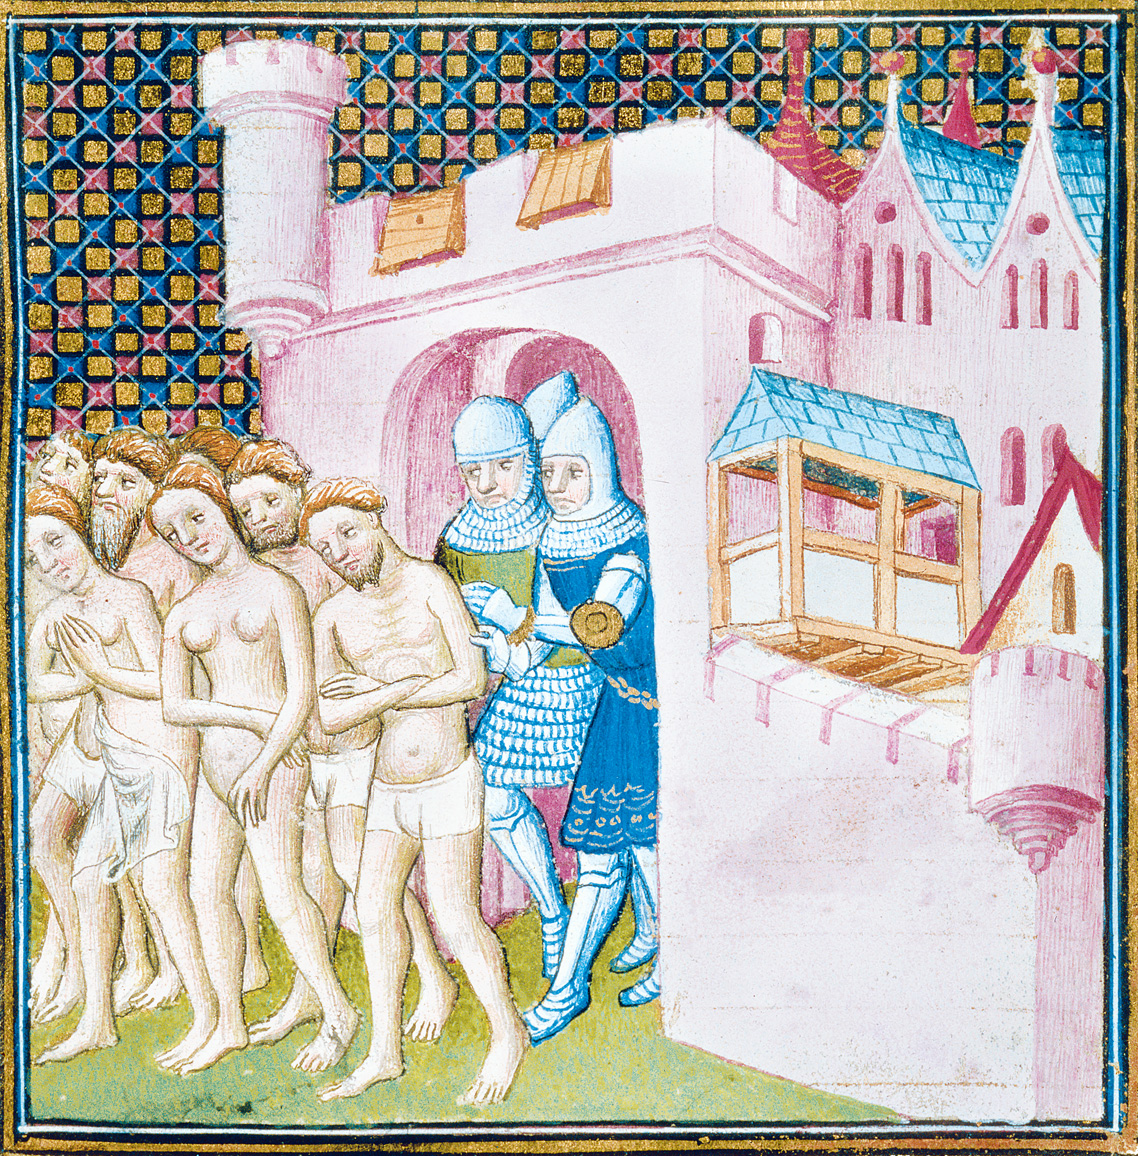 Expulsion of Albigensian heretics from Carcassonne in 1209 during the Albigensian Crusade, from Les Grandes chroniques de France, c. 1350. British Library, London.